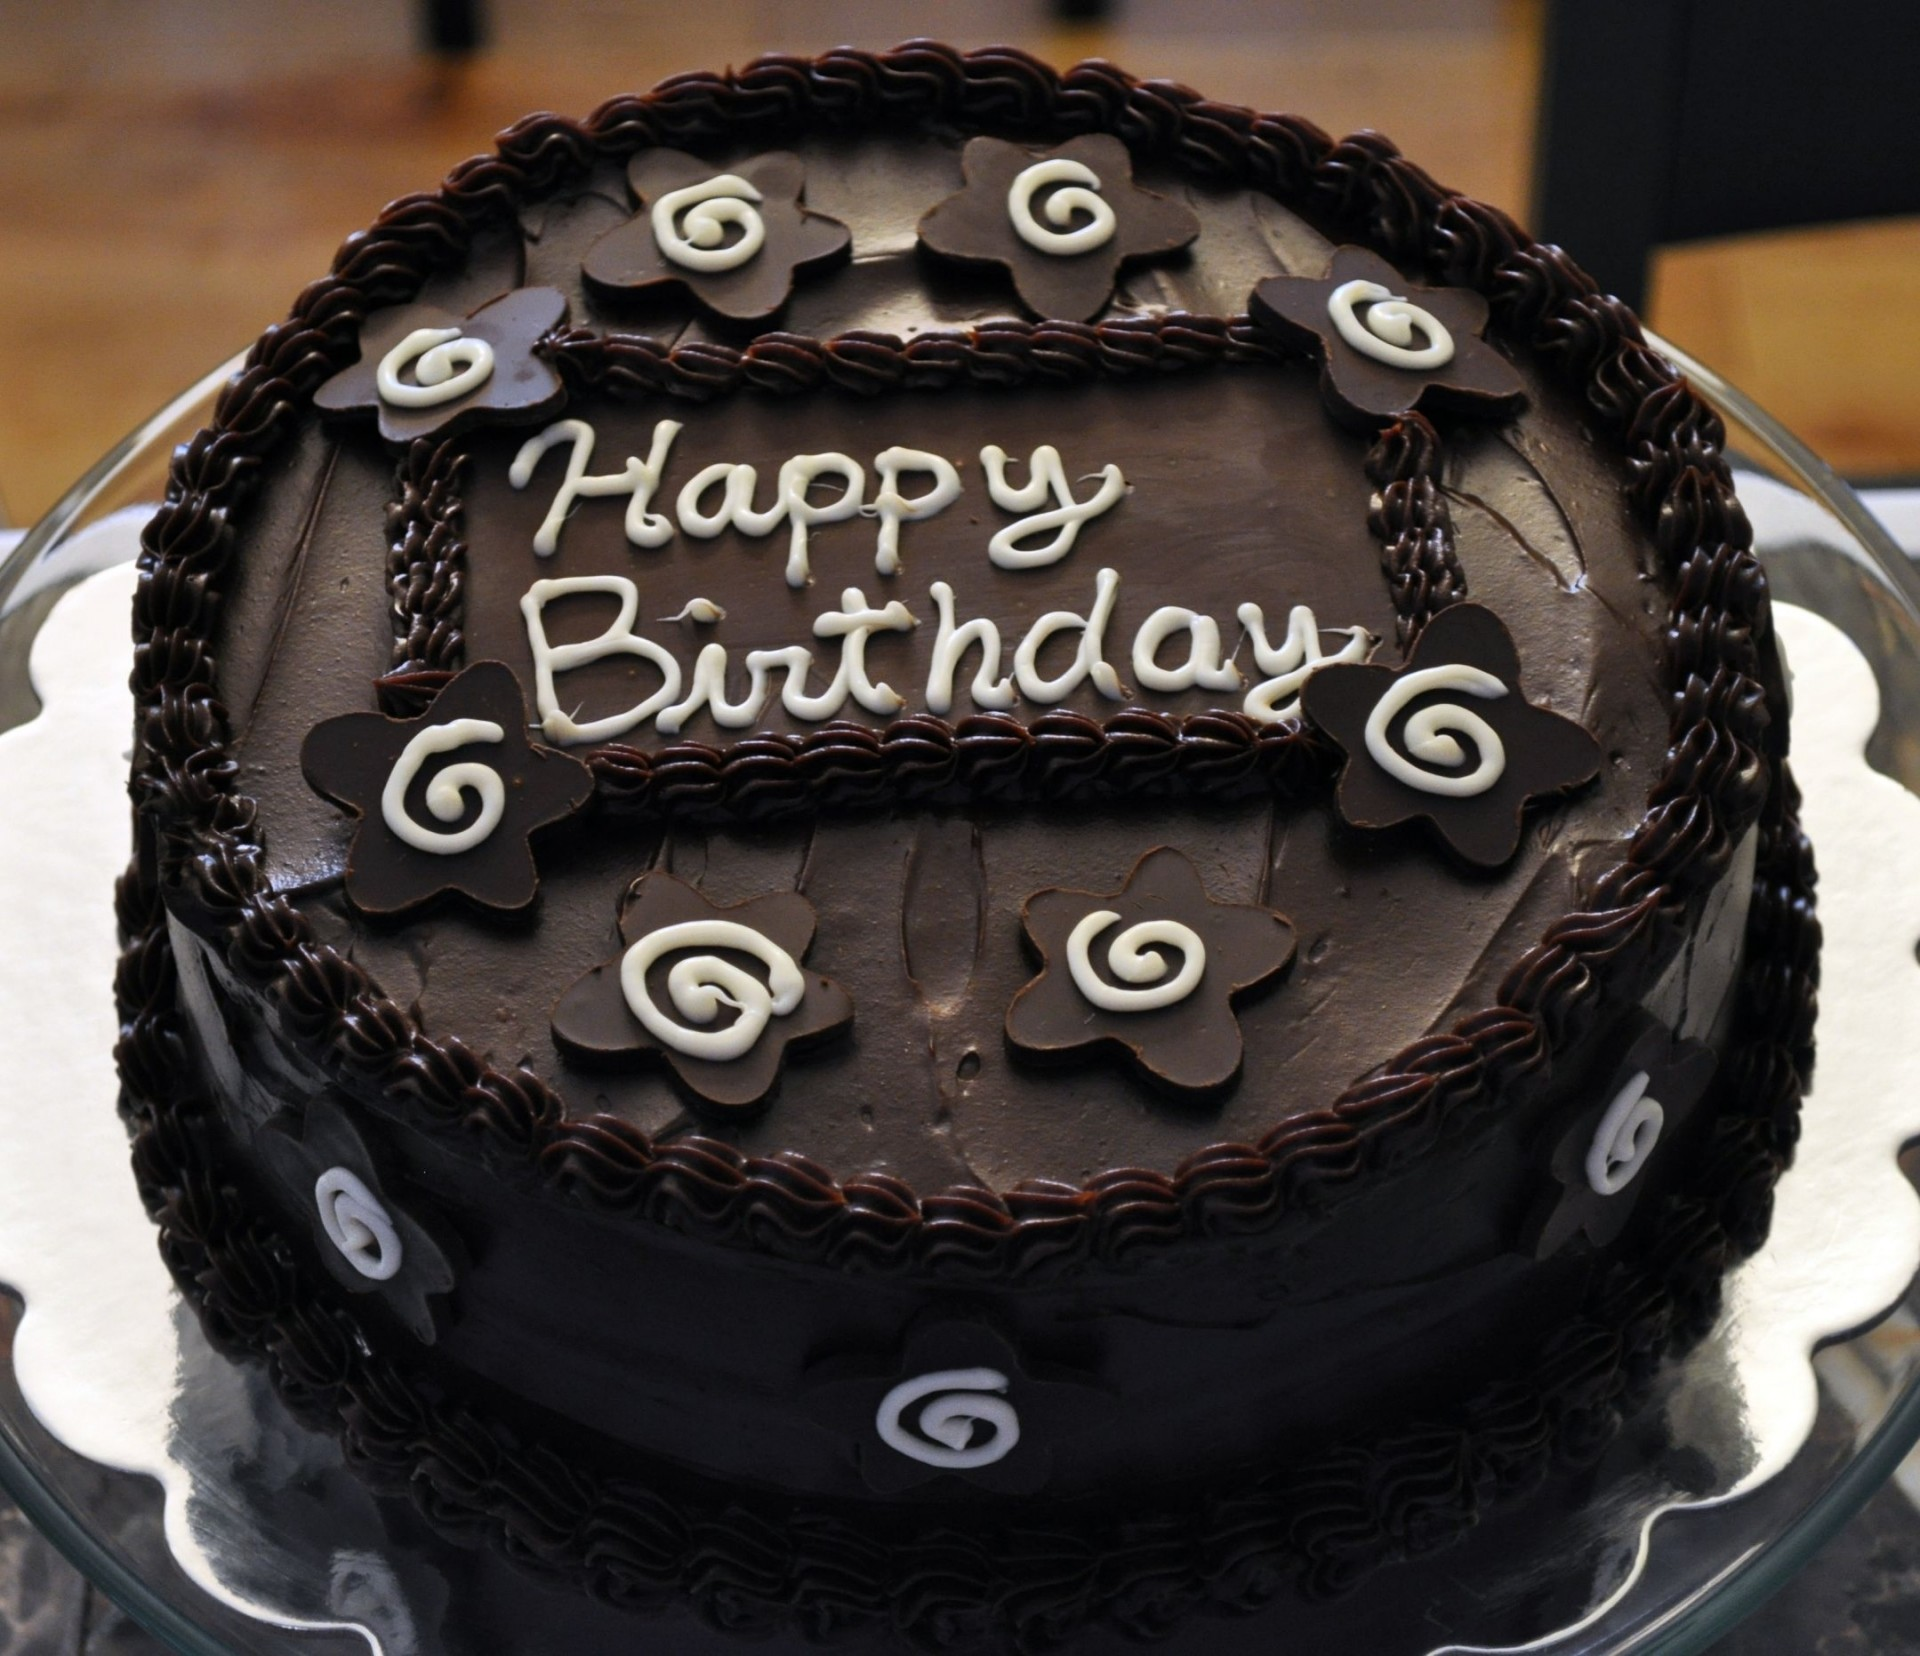 Birthday Cake Image Gallery Download The Galleries Of Hd Wallpaper